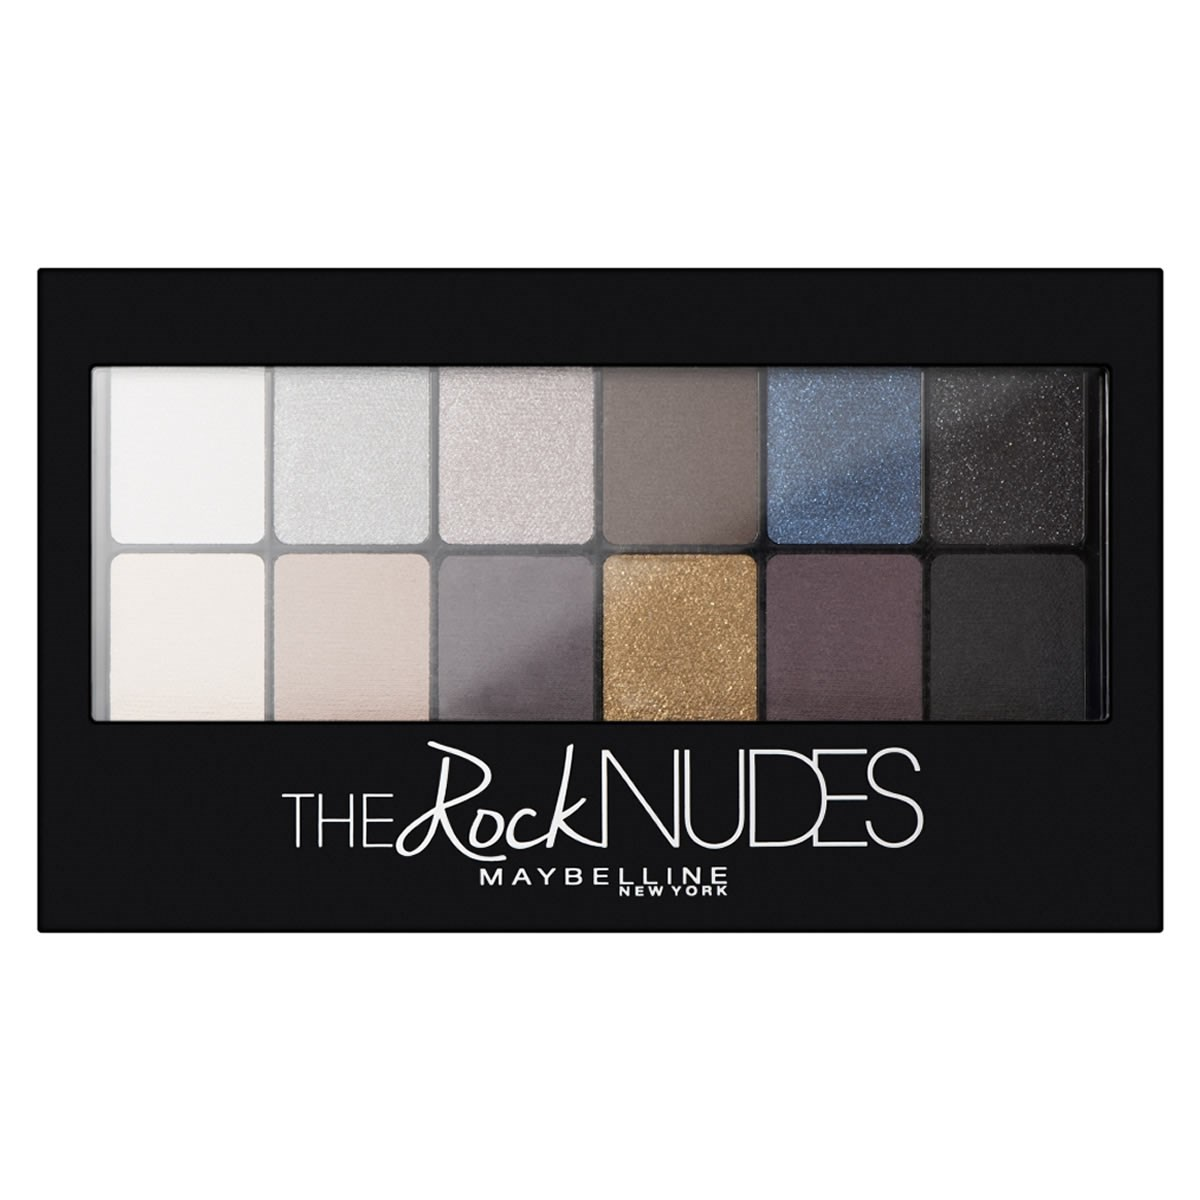 Maybelline Eye Studio Rock Nudes Palette